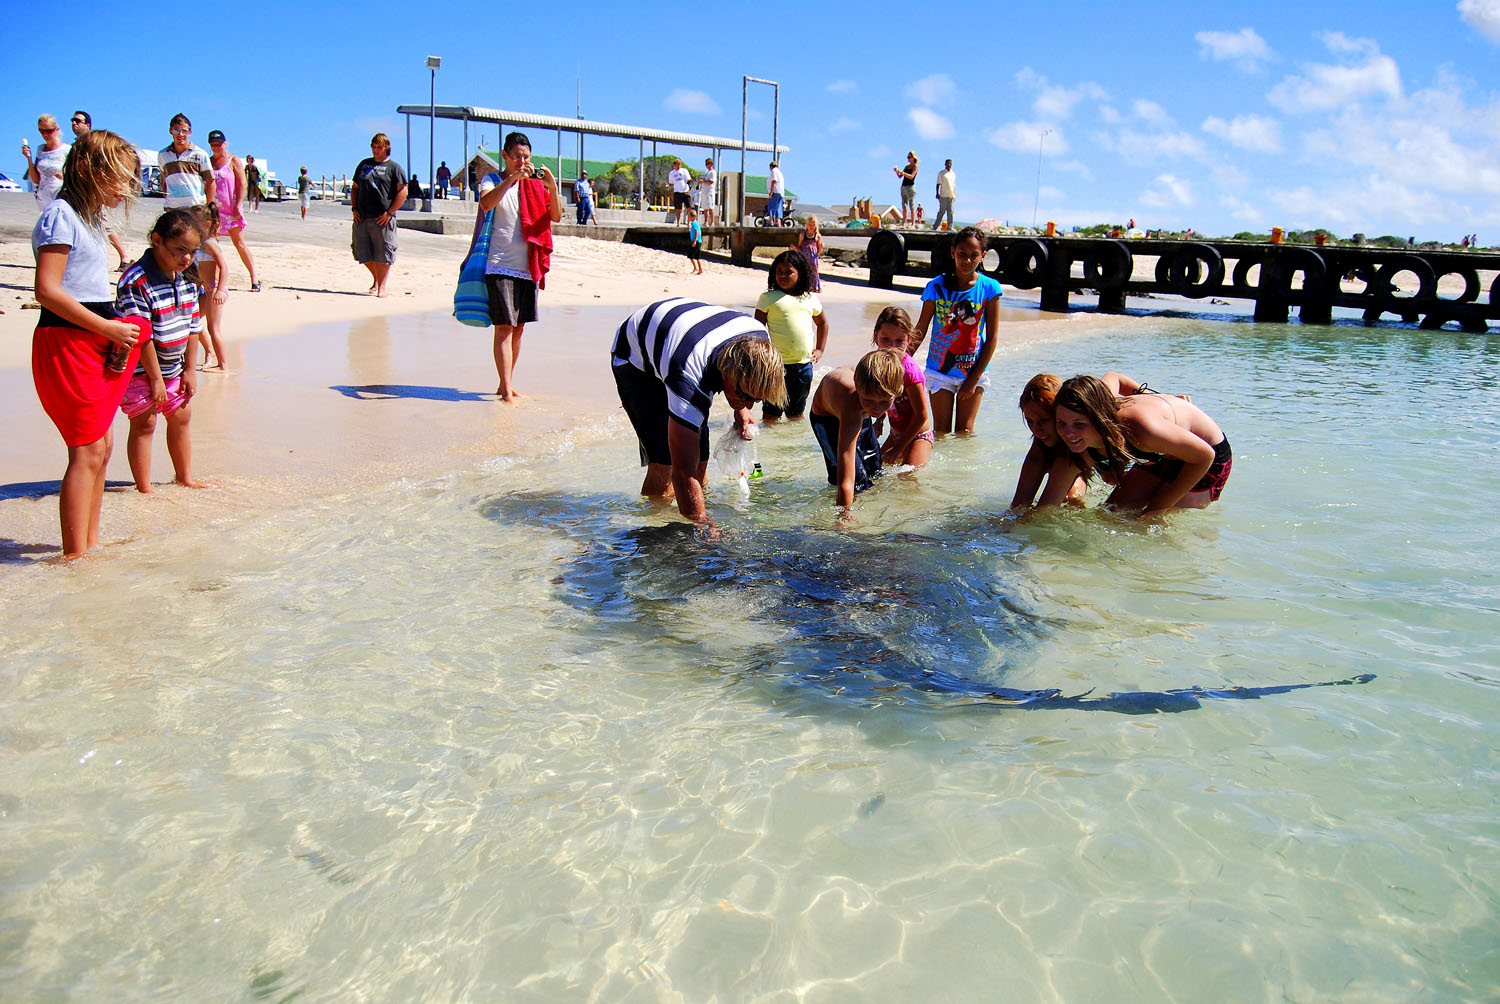 You Can Pilchards From Pelicans Harbour Café And Wade Into The Shallow Water To Get Up Close Personal With Parrie Stingray His Friends